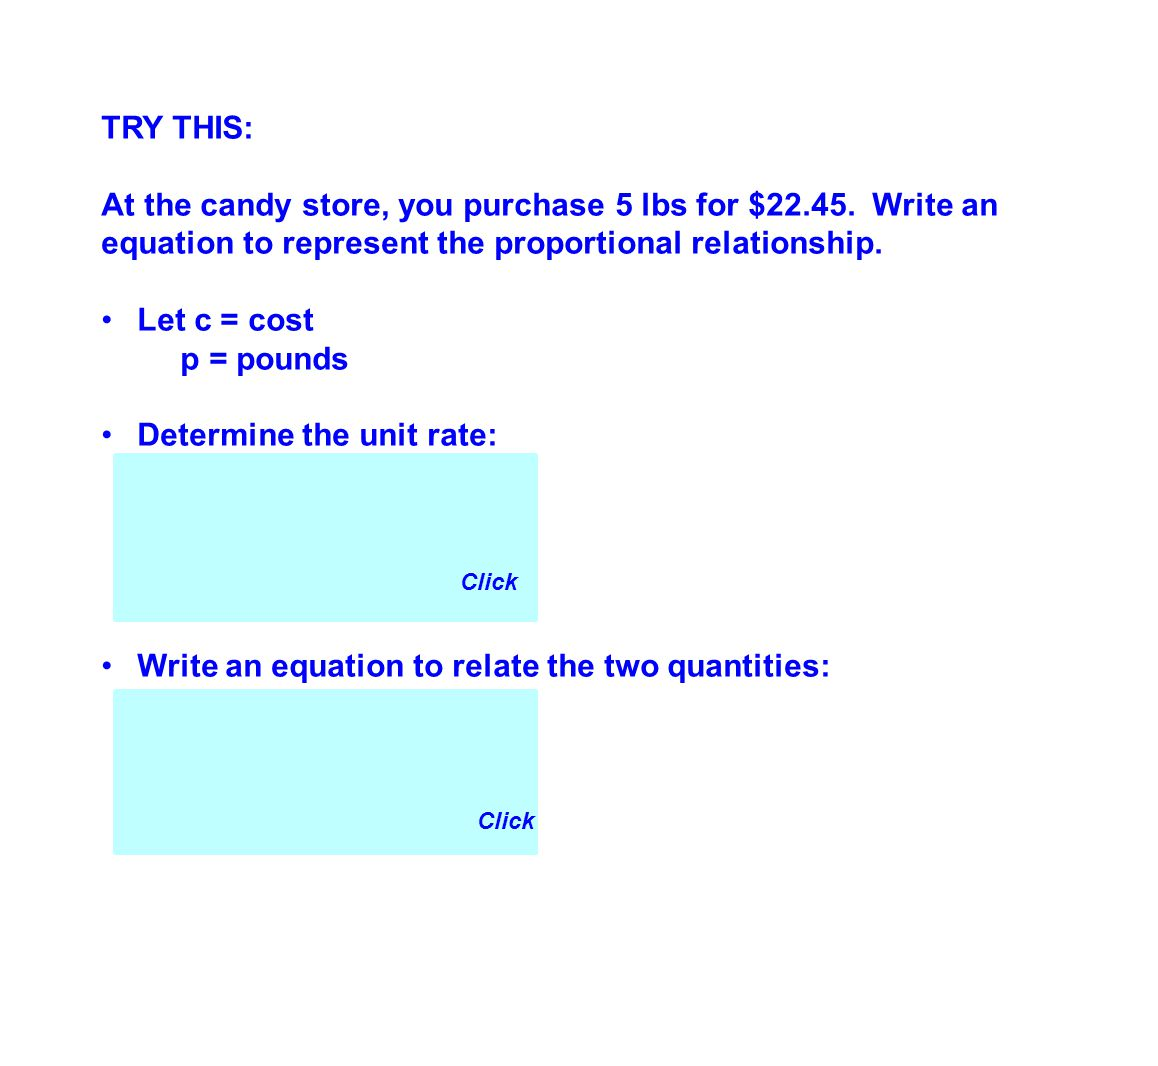 TRY THIS: At the candy store, you purchase 5 lbs for $22.45. Write an equation to represent the proportional relationship. Let c = cost p = pounds Det